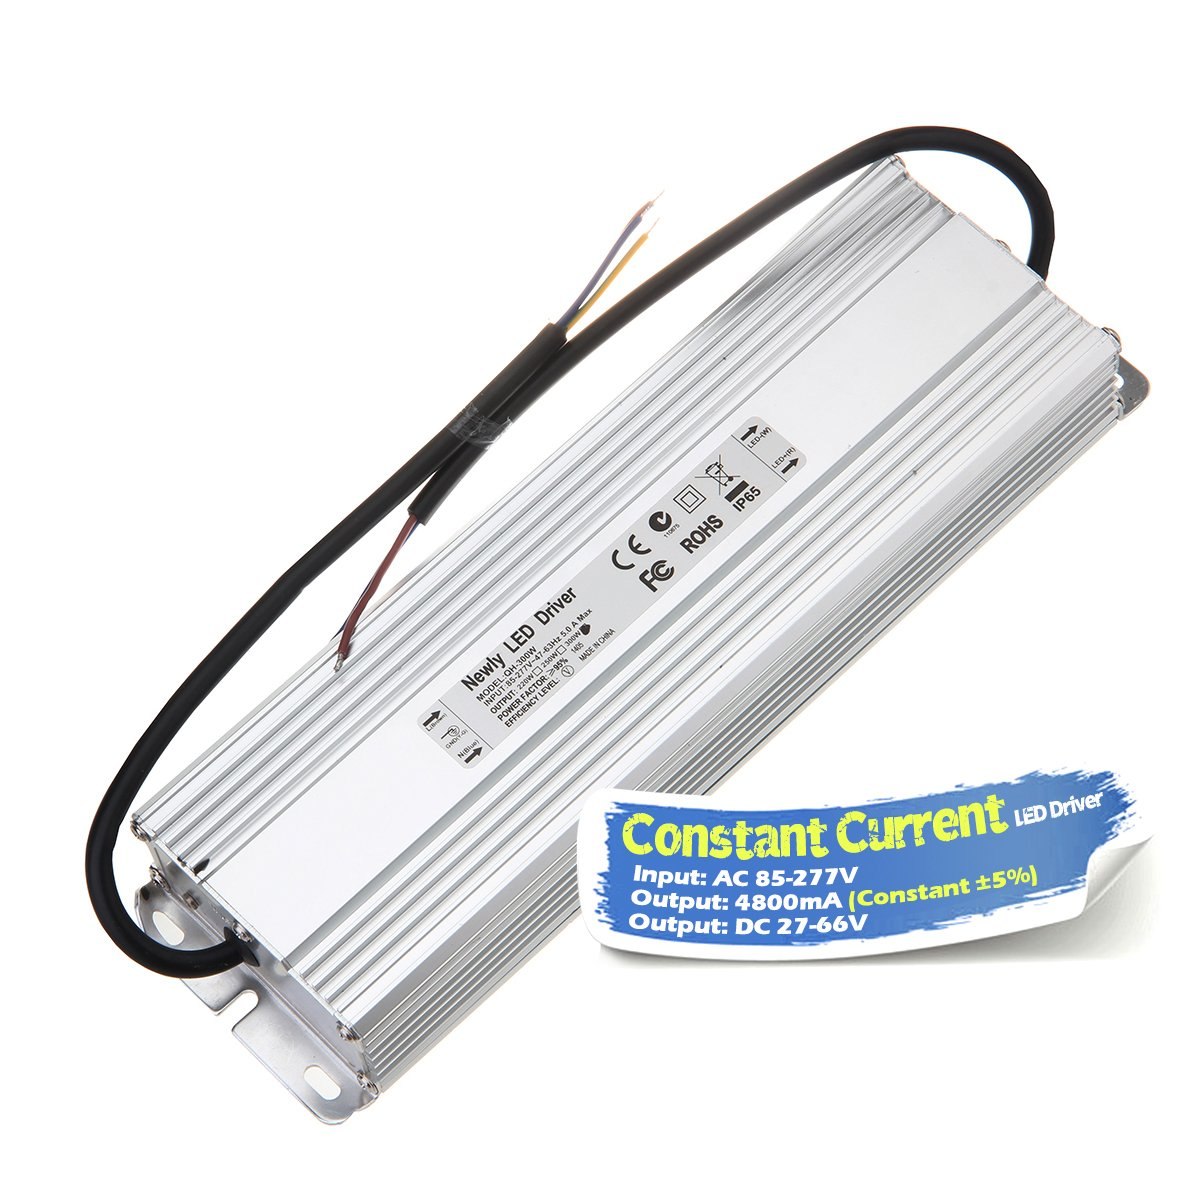 Chanzon LED Driver 4800mA (Constant Current Output) 27V-66V (In:85-277V AC-DC) (10-20)x16 160W 300W 320W IP67 Waterproof High Power Supply 4800 mA Lighting Transformer for 300 W COB Chips (Aluminium)